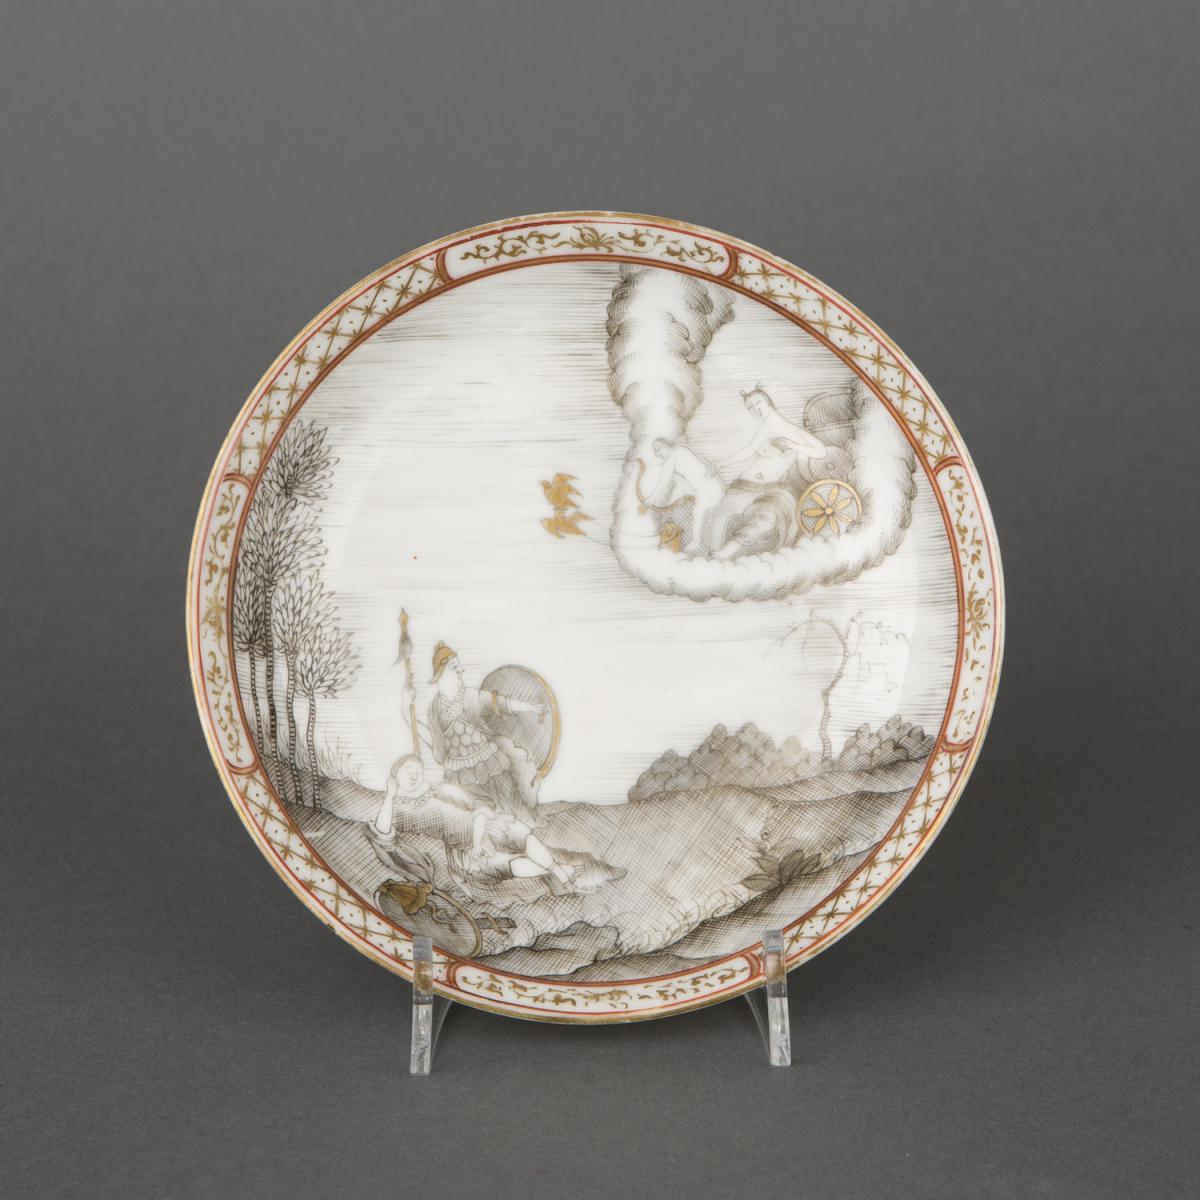 A Chinese export porcelain grisaille saucer, Qianlong, 1736-1795